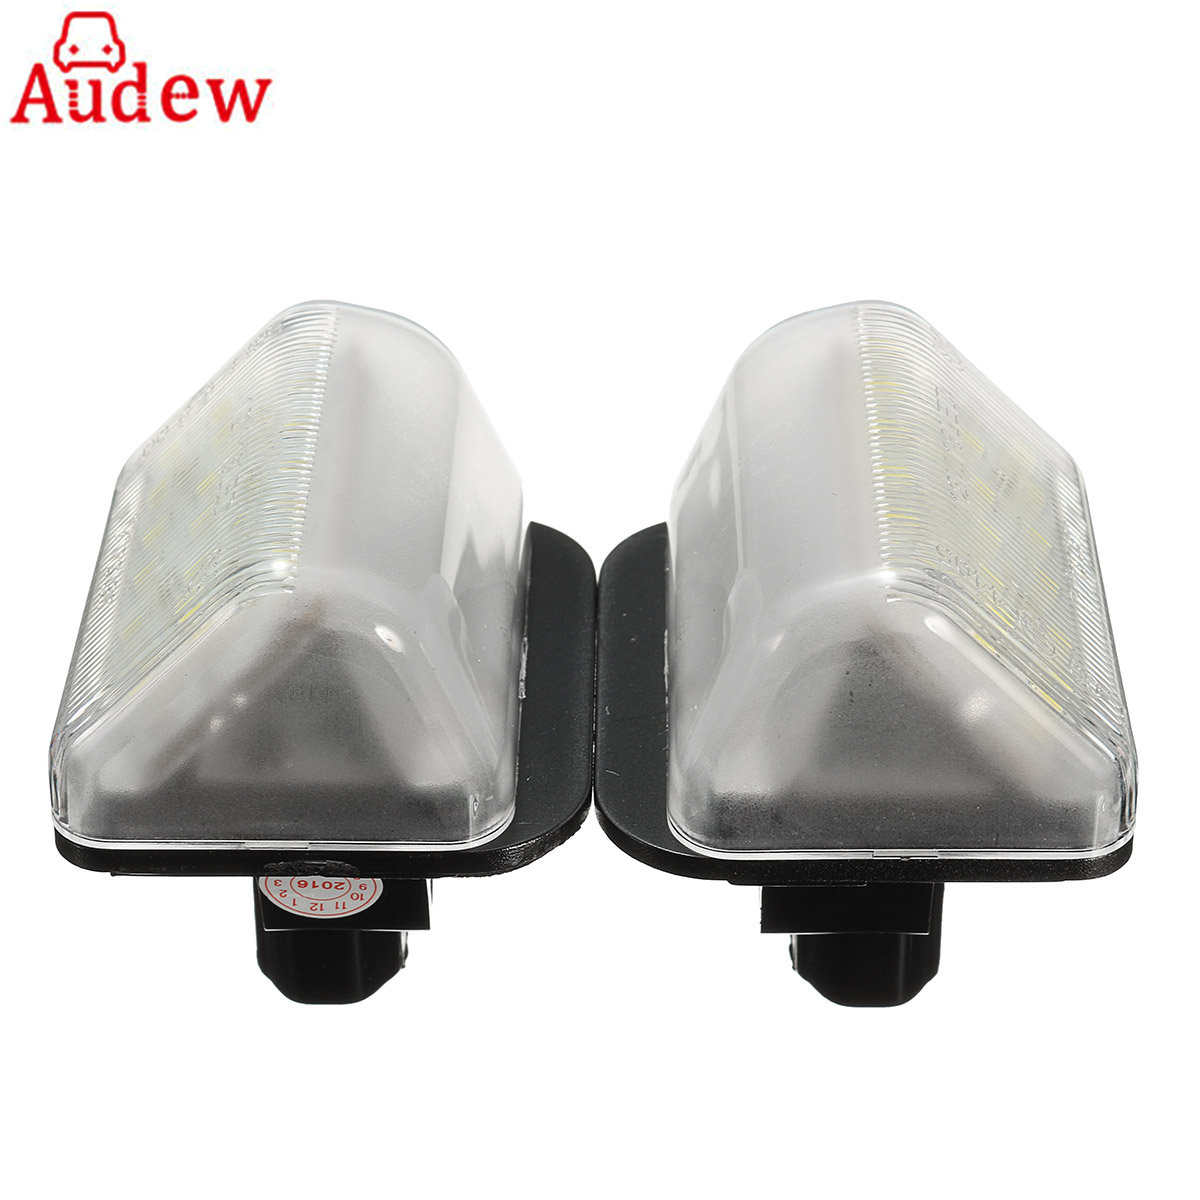 For Mazda CX-5 CX-7 Speed6 12V 2Pcs LED Car License Plate Light Lamp  White Number Plate Lamp Bulb smaart v 7 new license